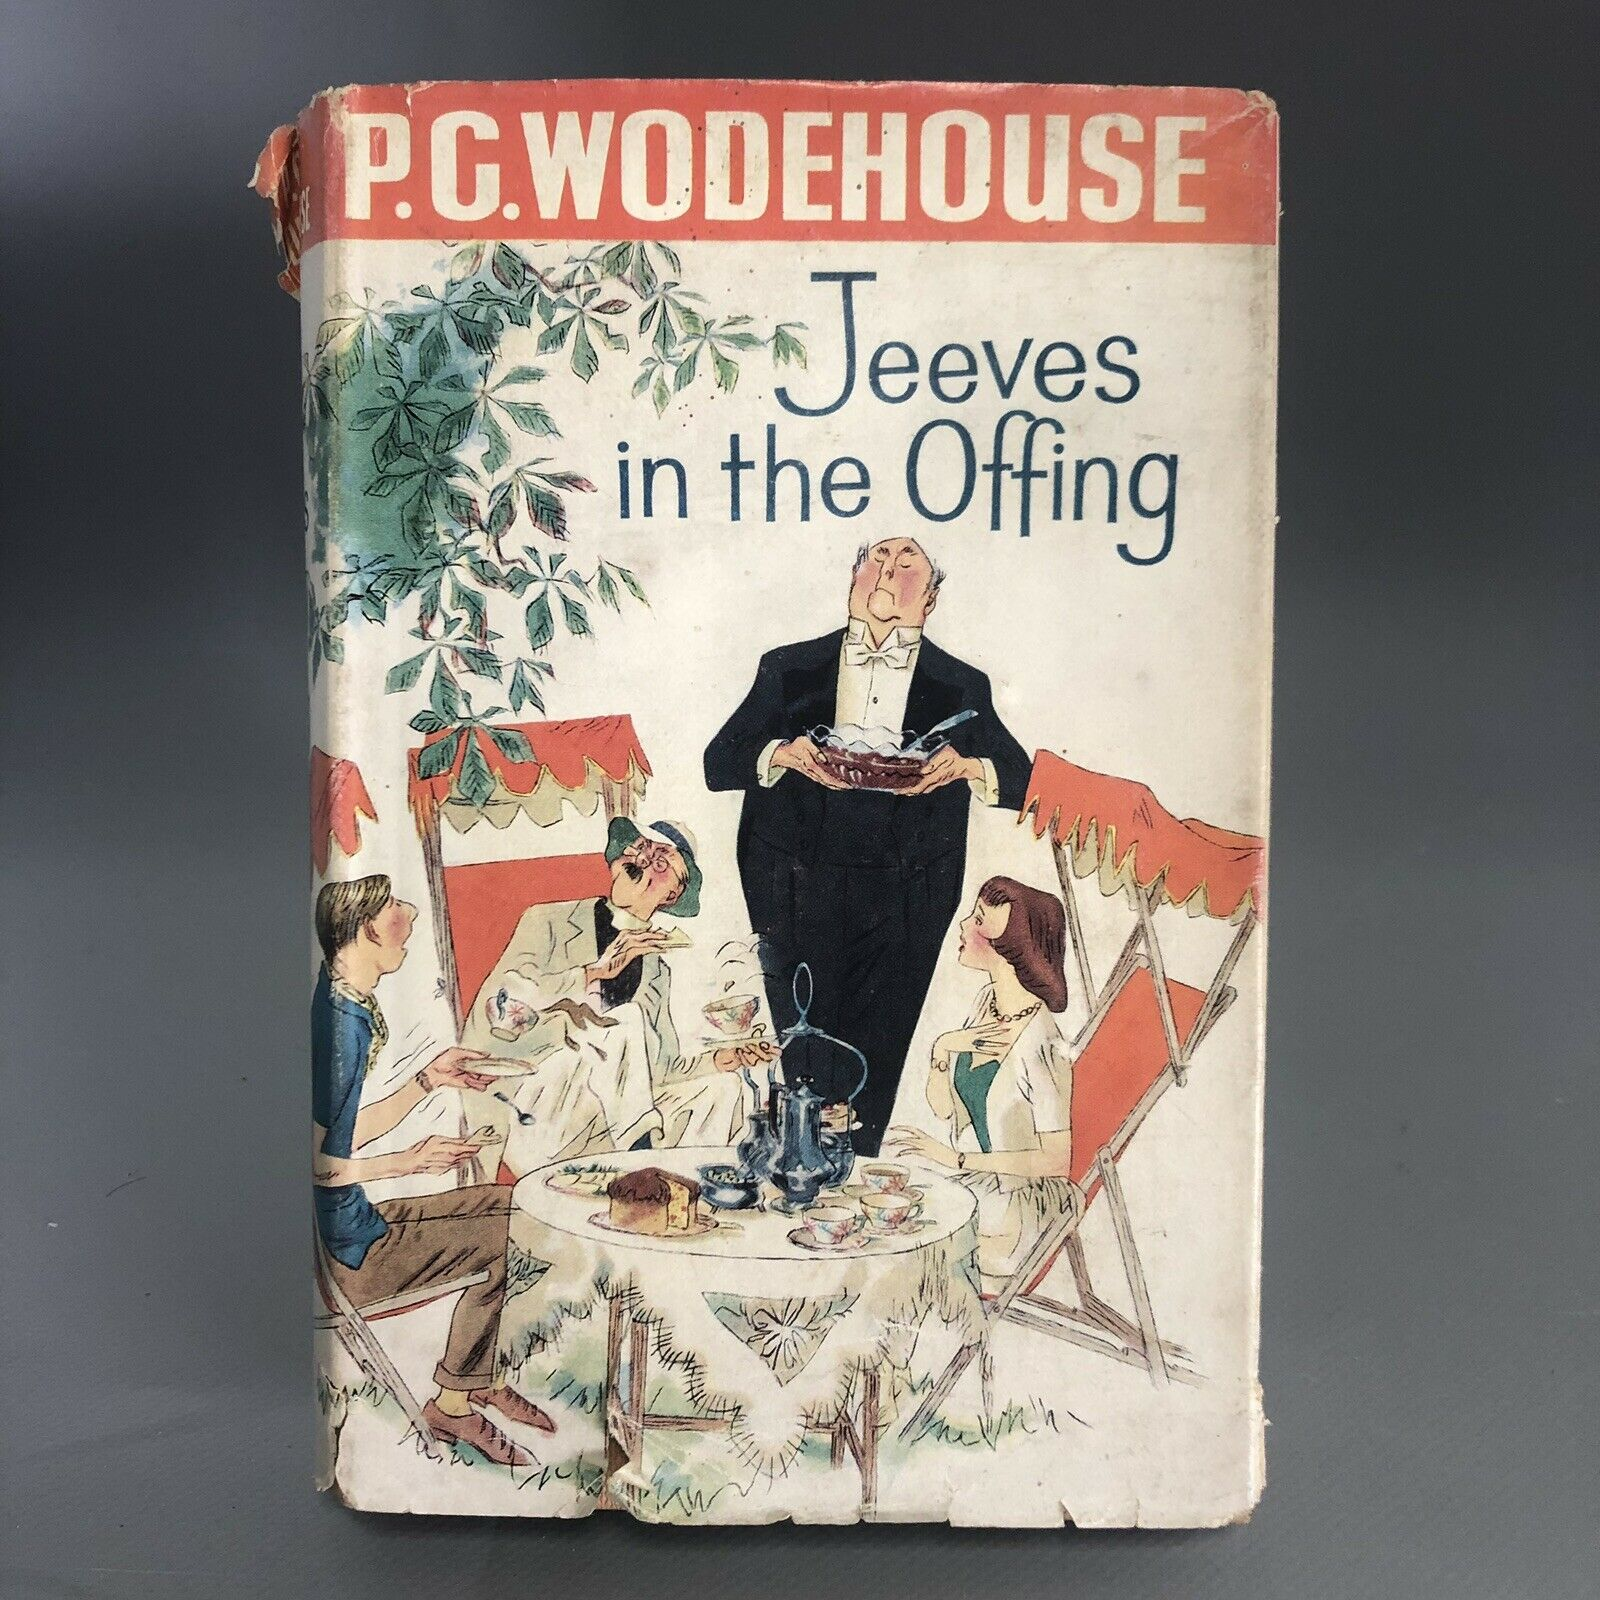 Lot 3 - 1960 P.G. Wodehouse Jeeves in the Offing First Edition with Dust Jacket